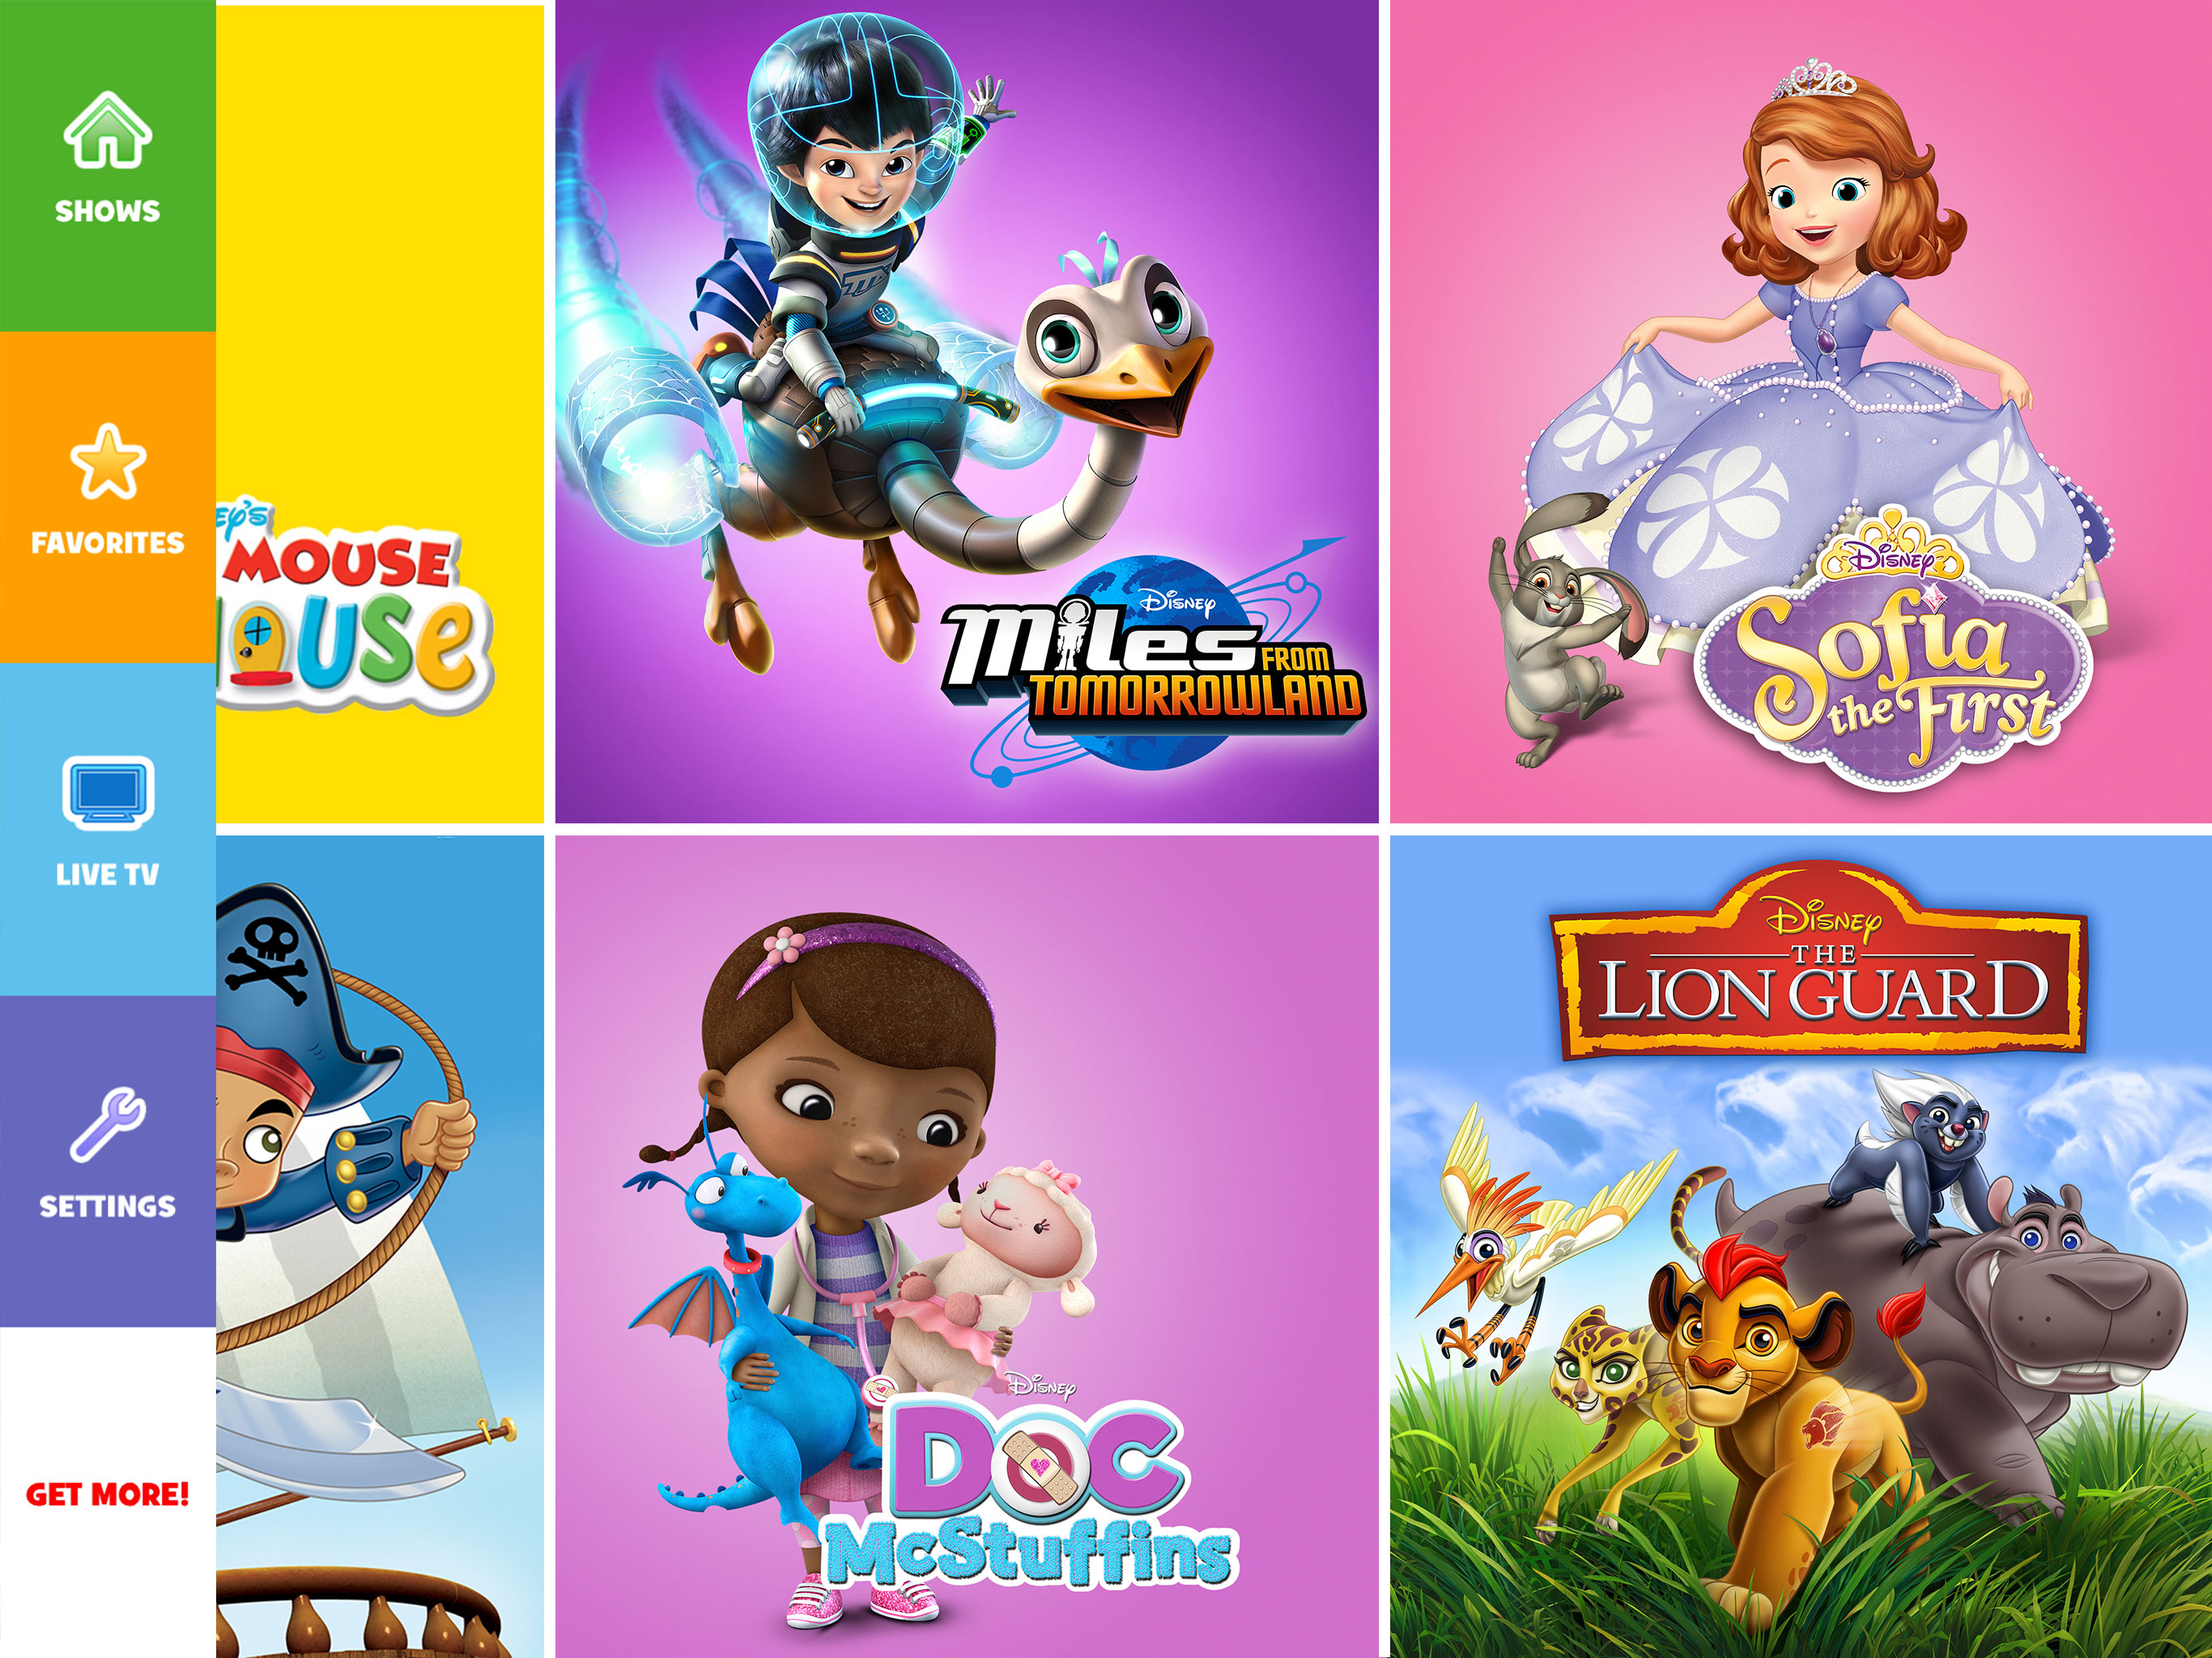 Disney junior app that lets kids watch their favorite programs such as